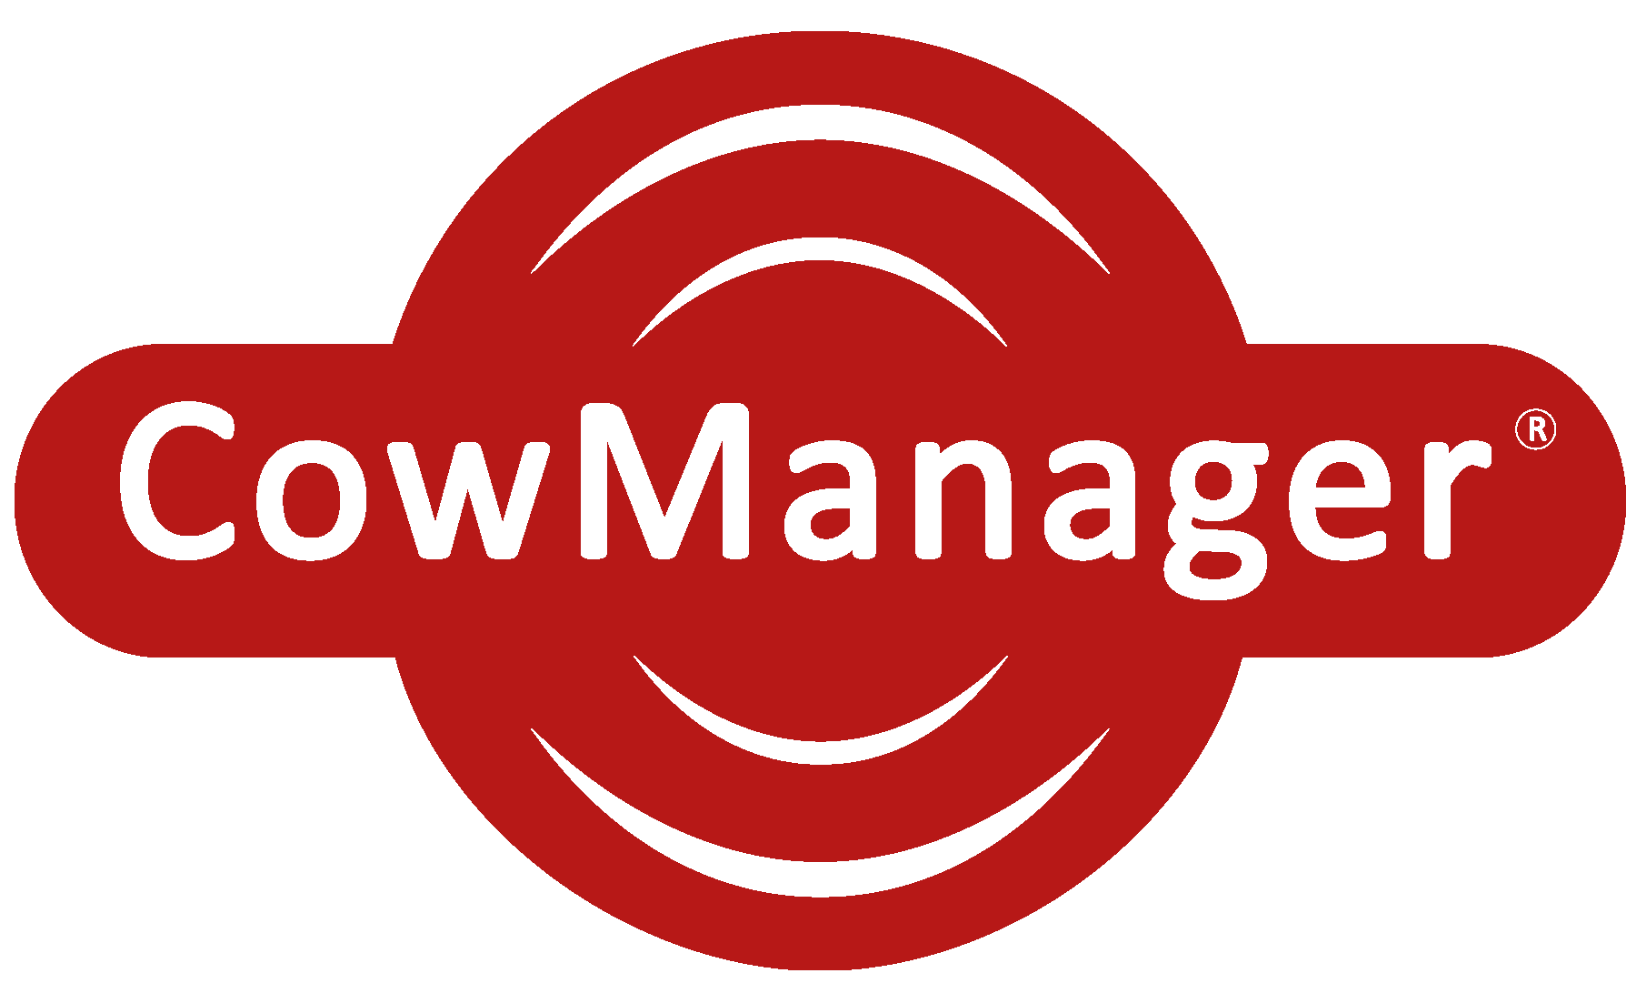 Cow Manager Logo